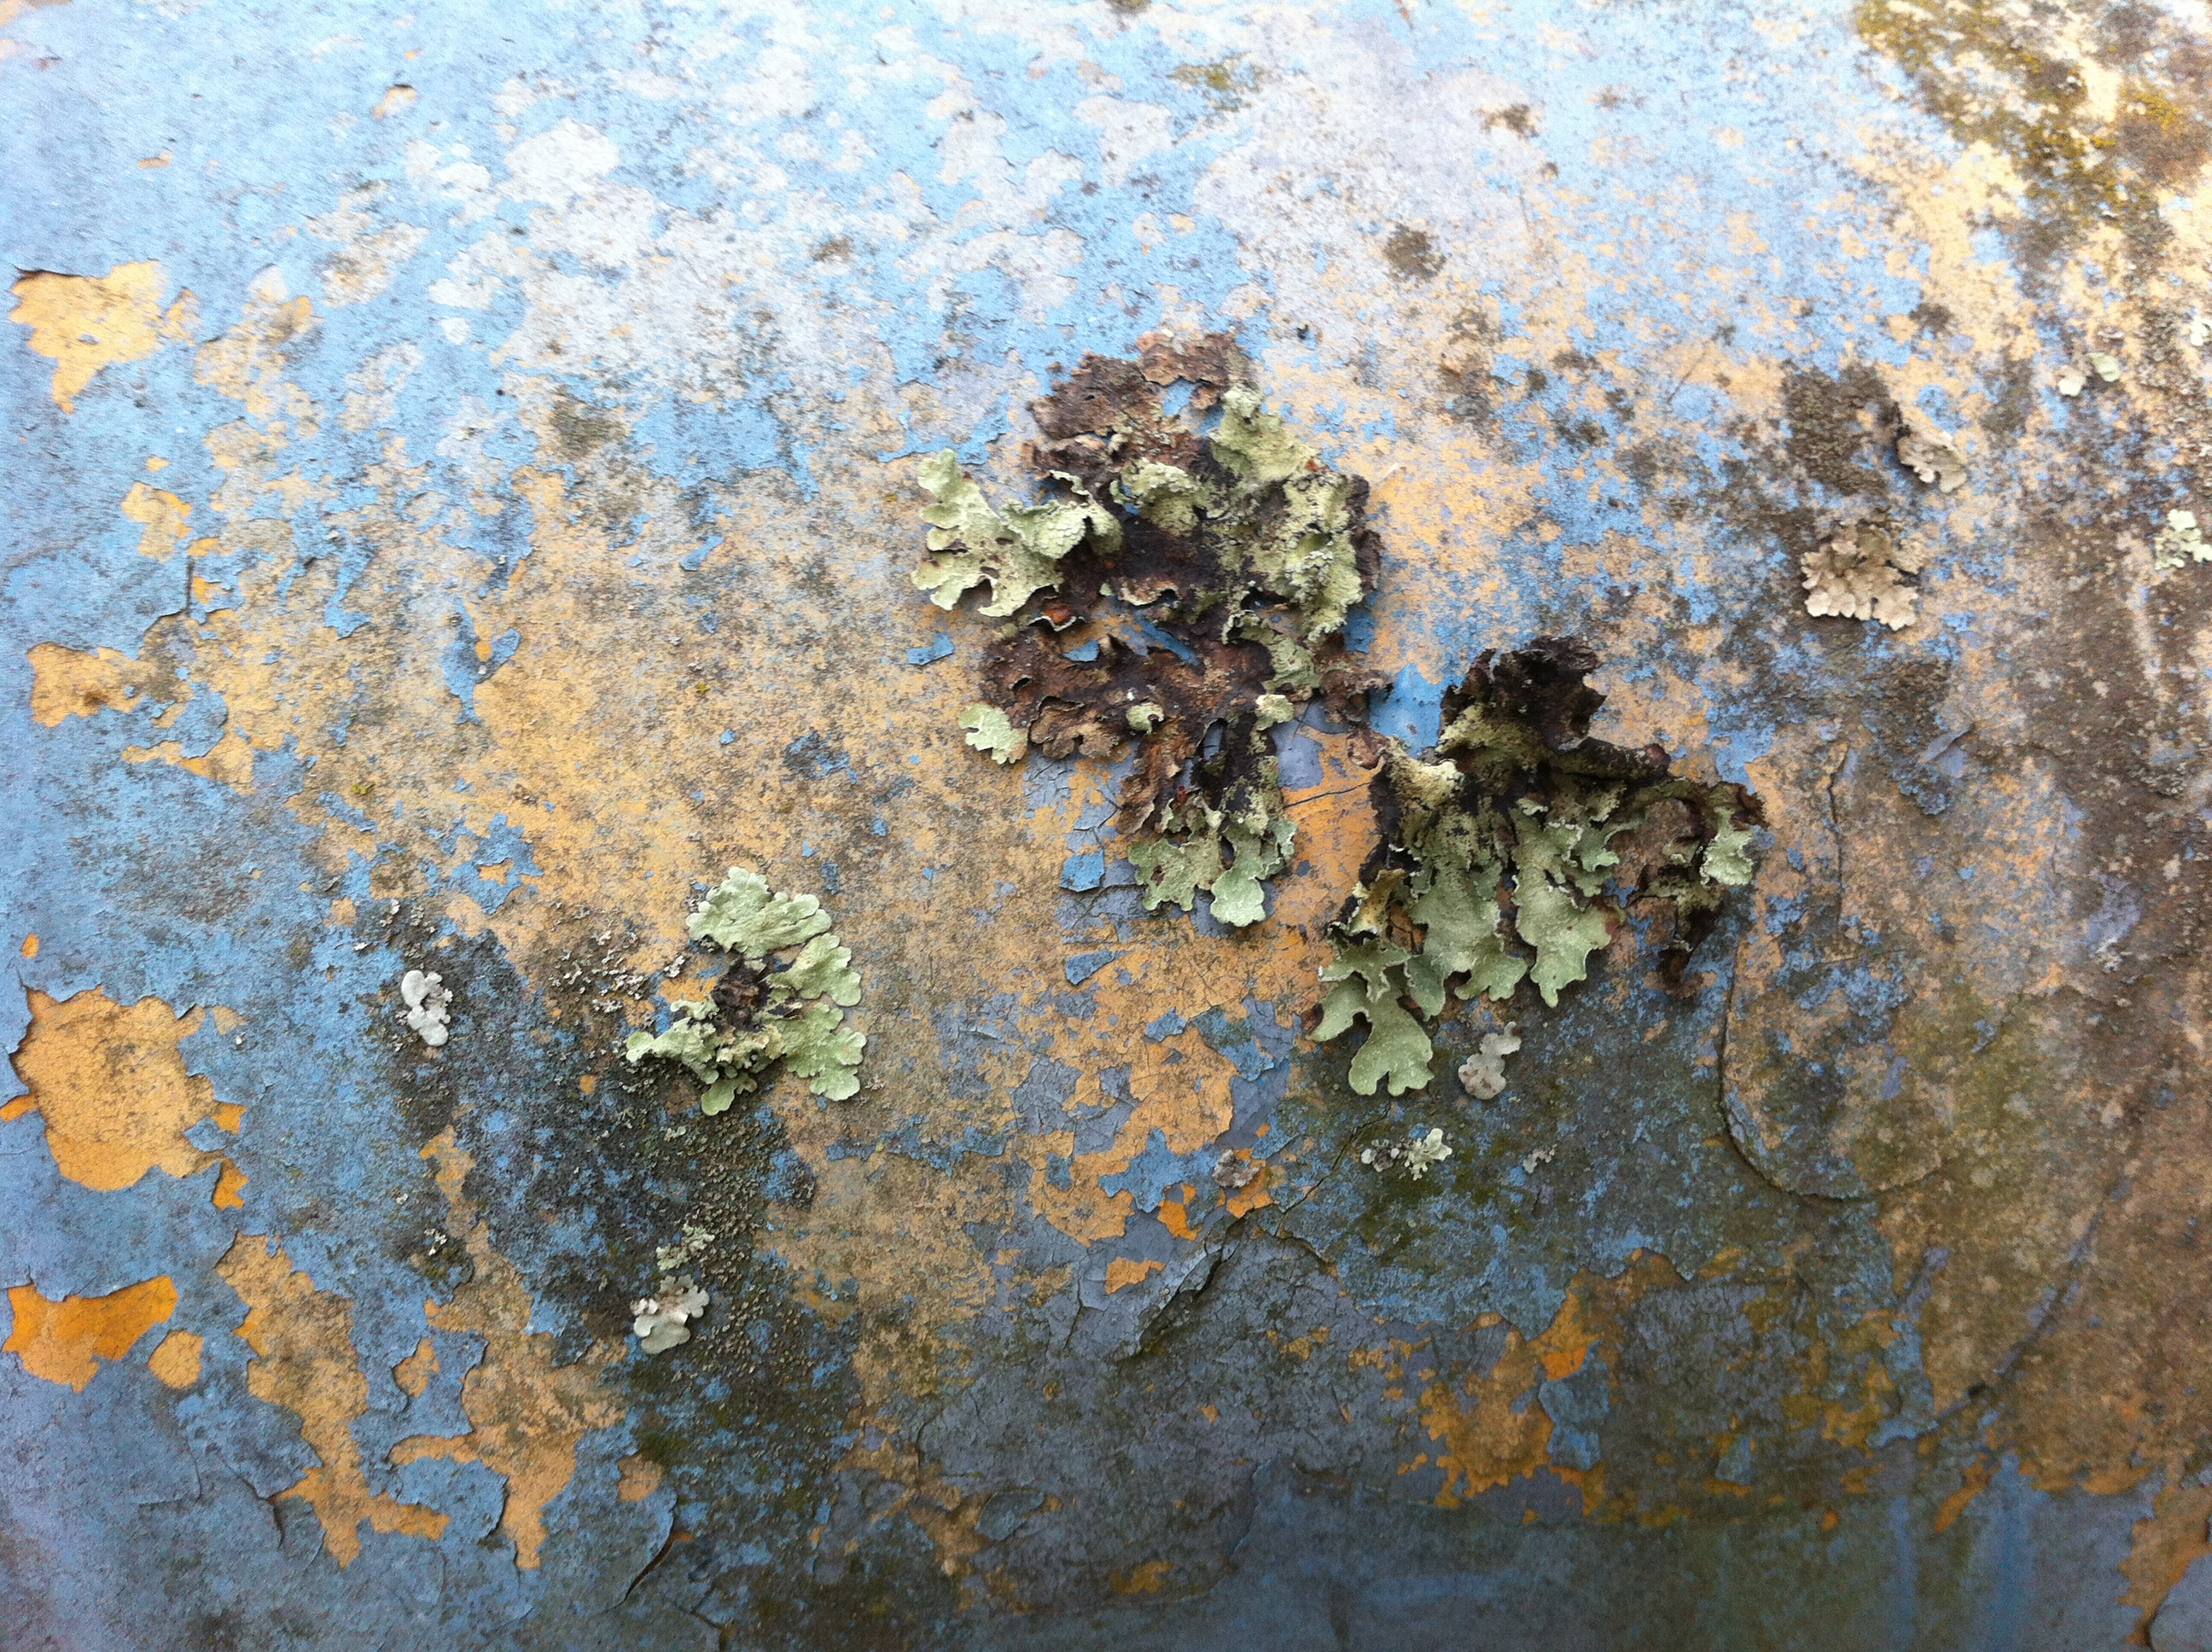 painted metal with lichen